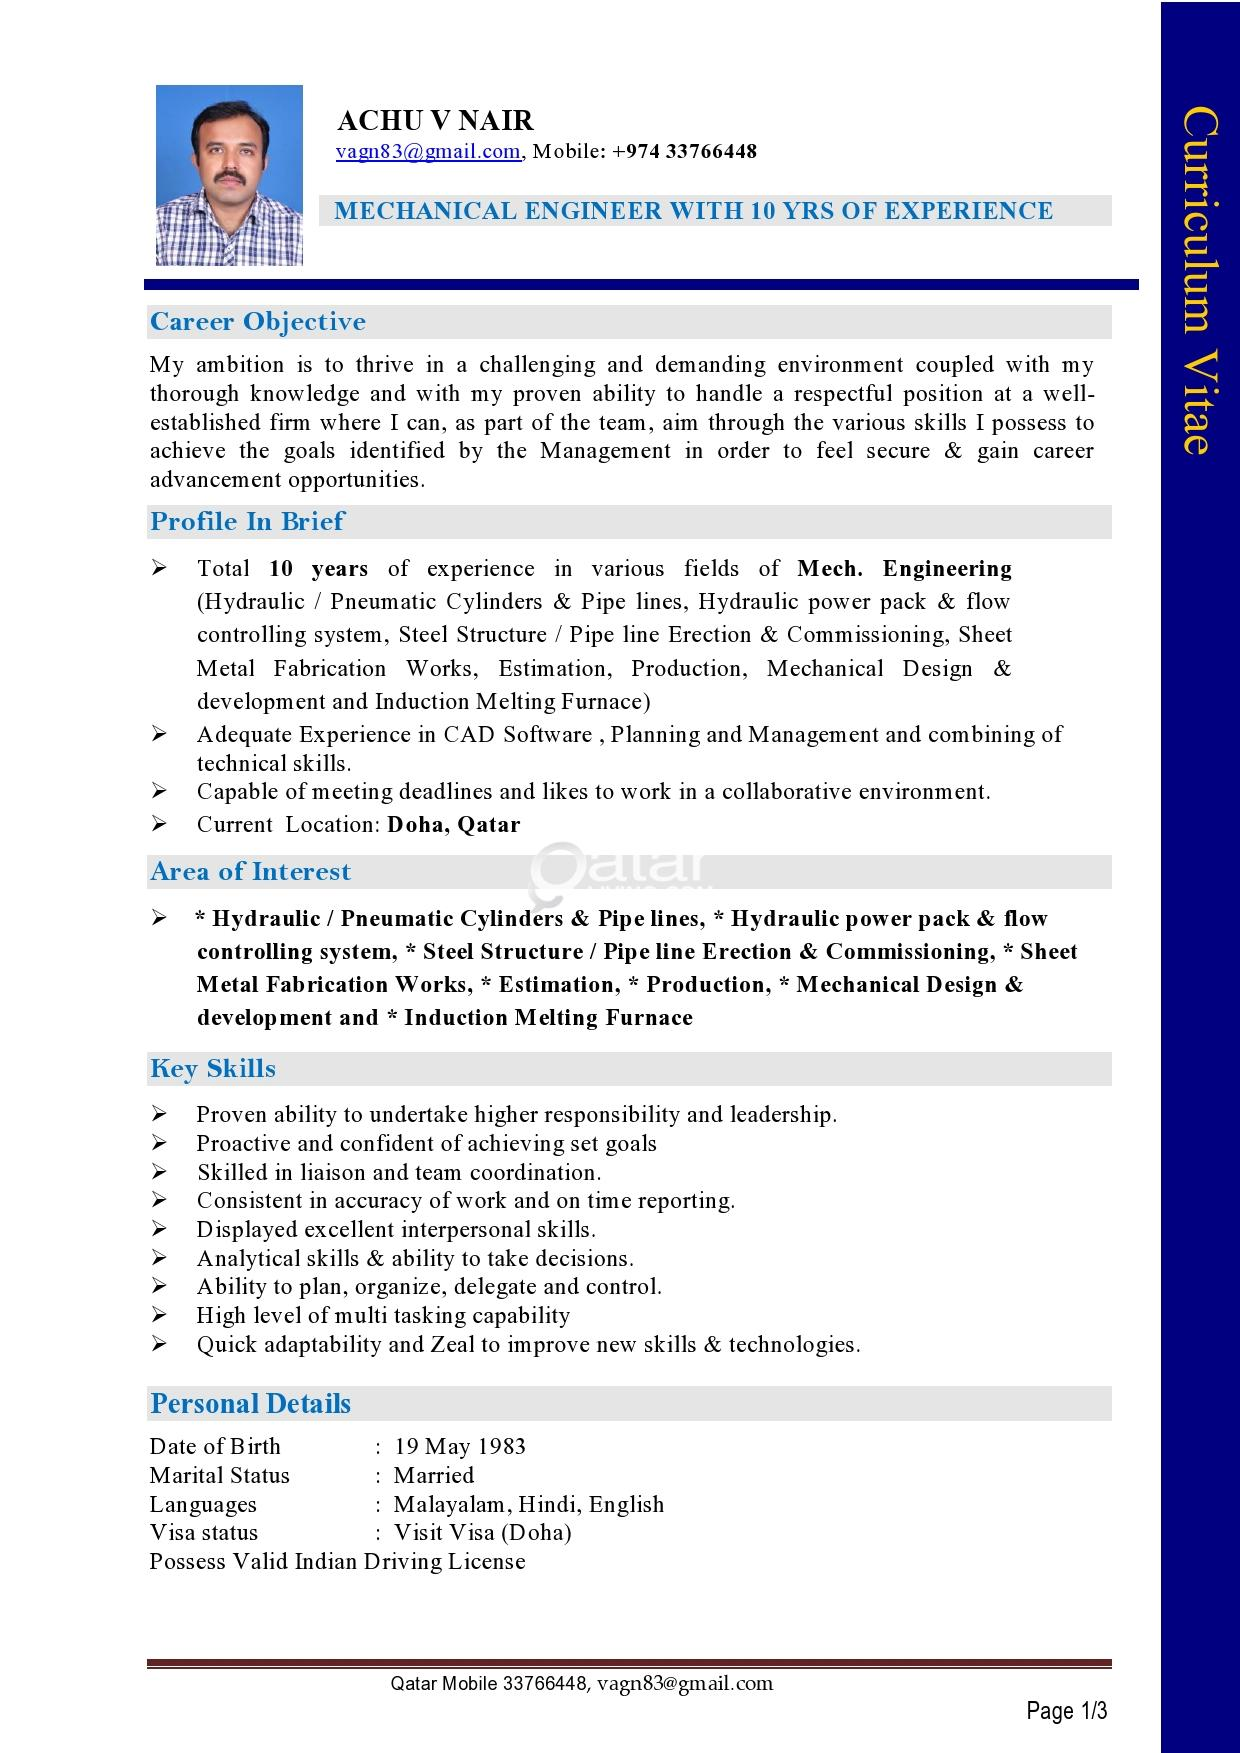 Mechanical Engineer With 10 Years Of Experience Looking For Job Qatar Living